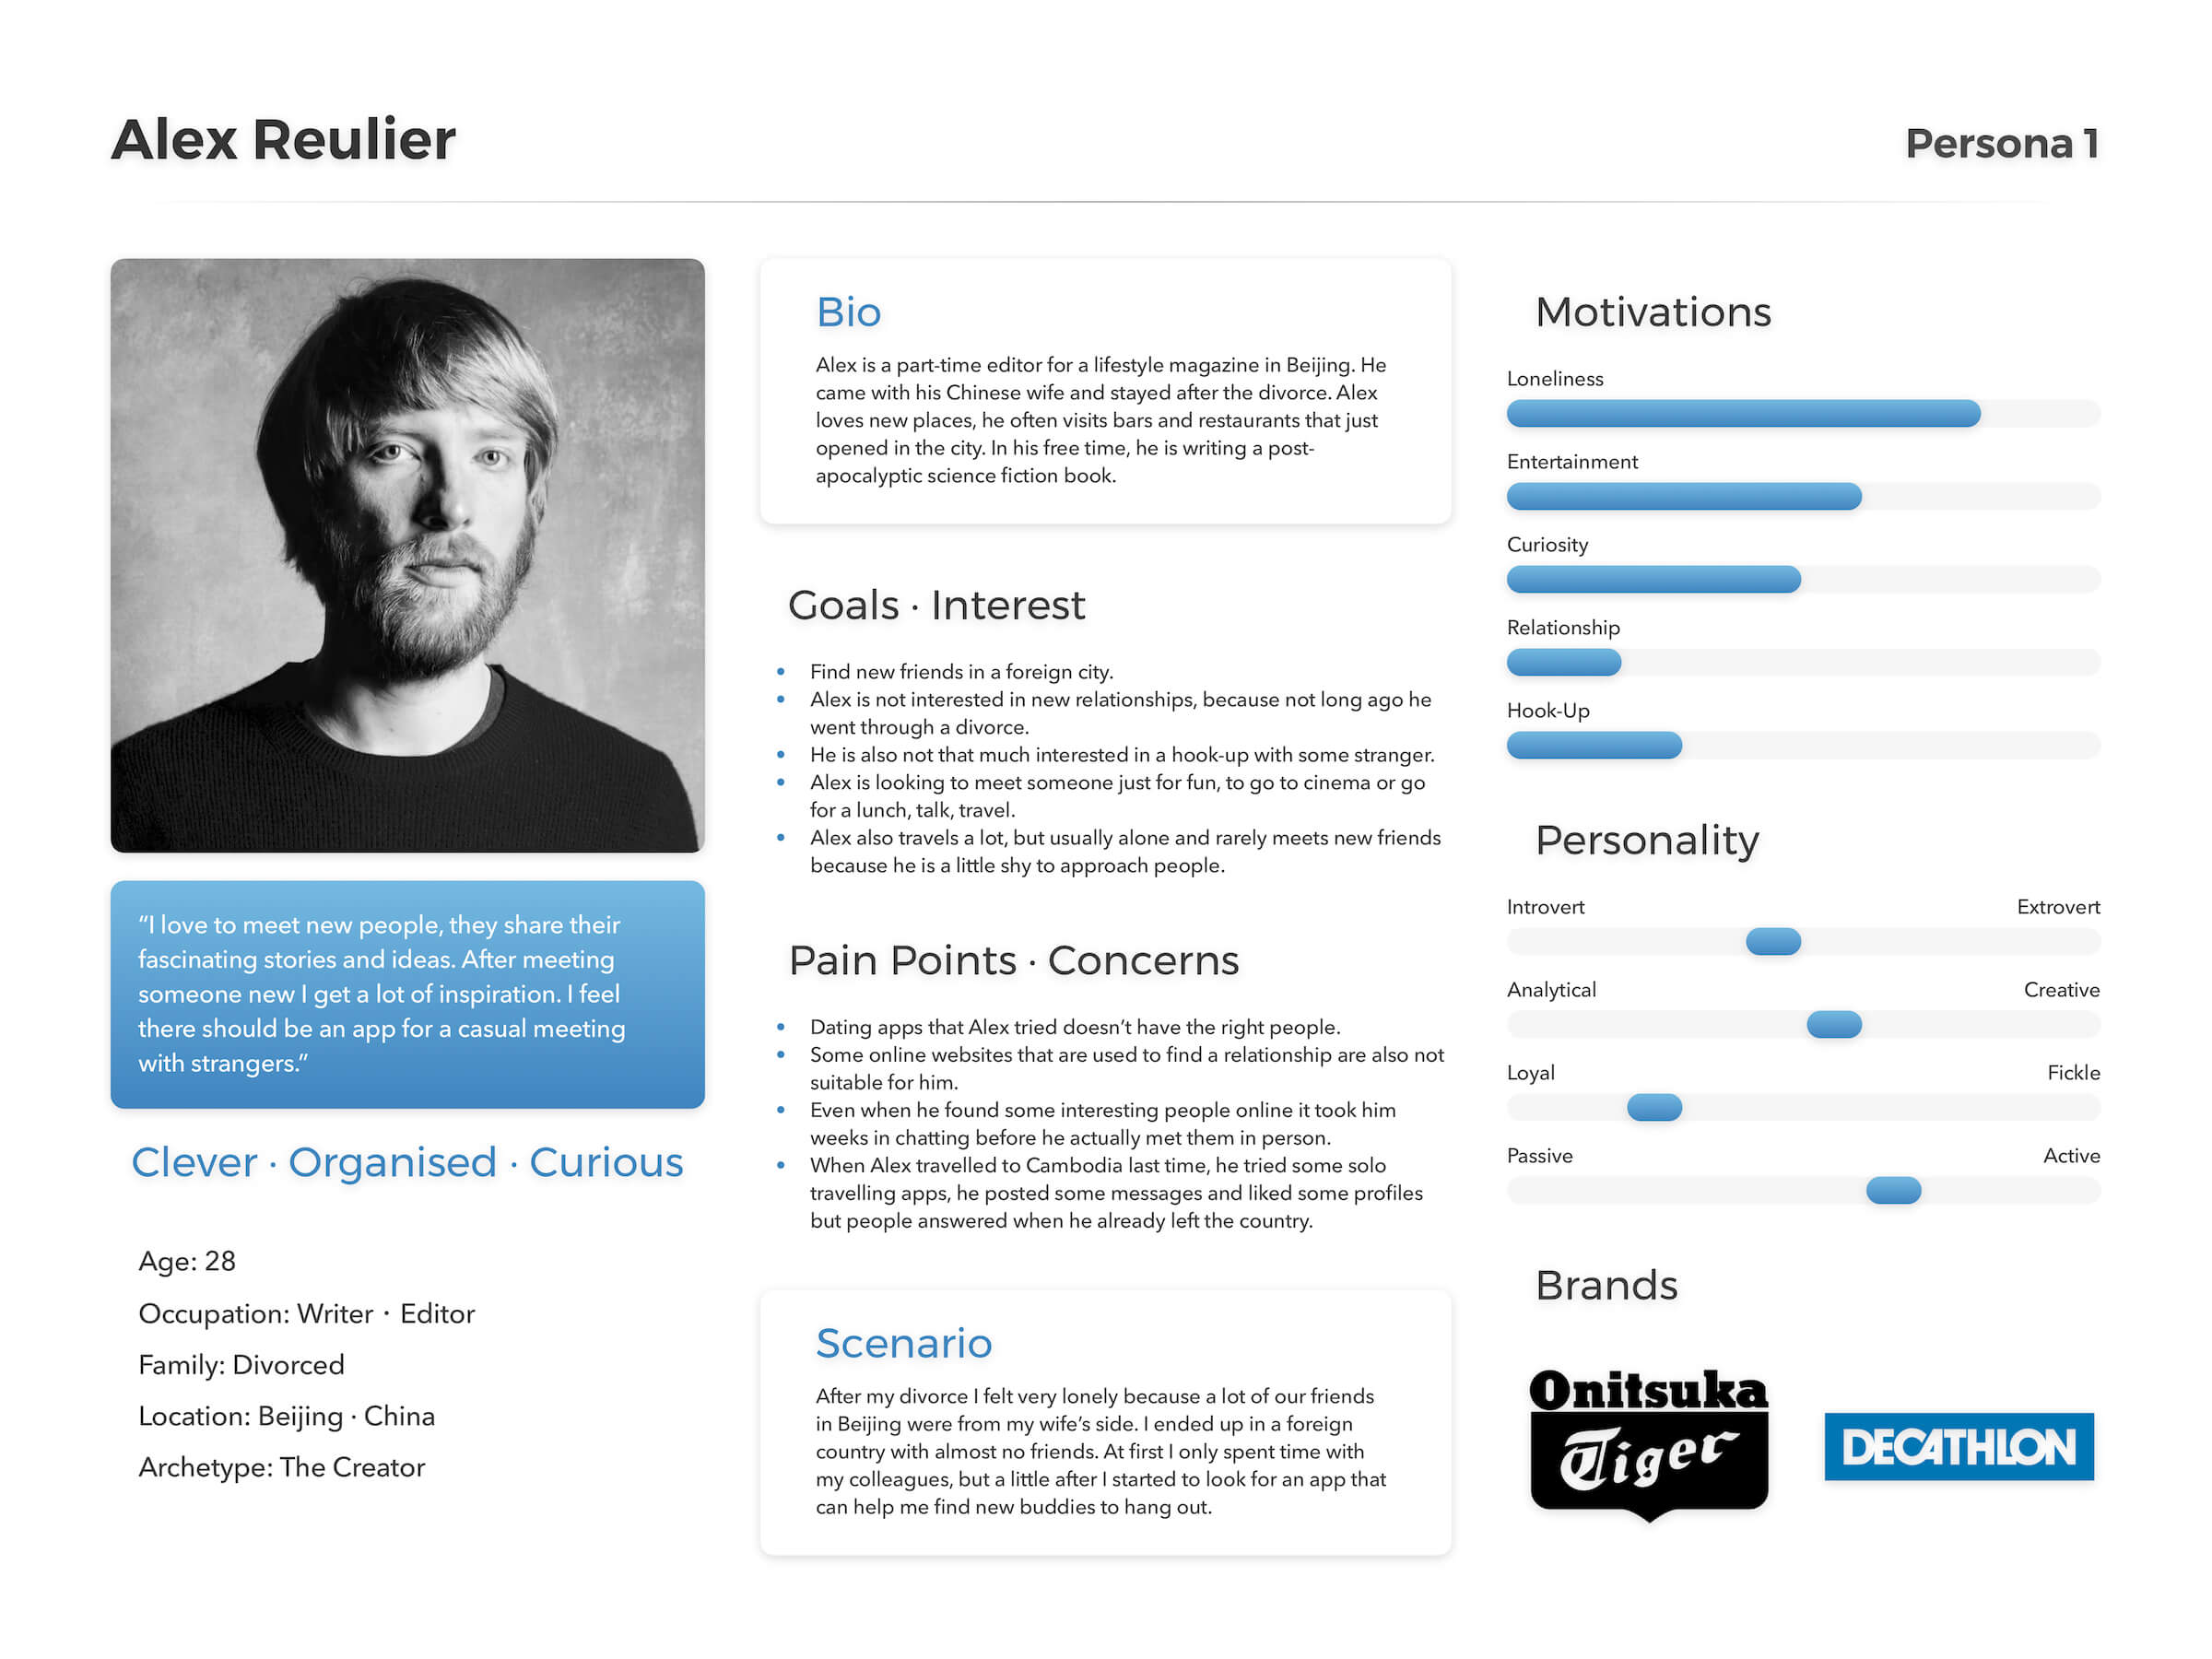 User Personas cover image